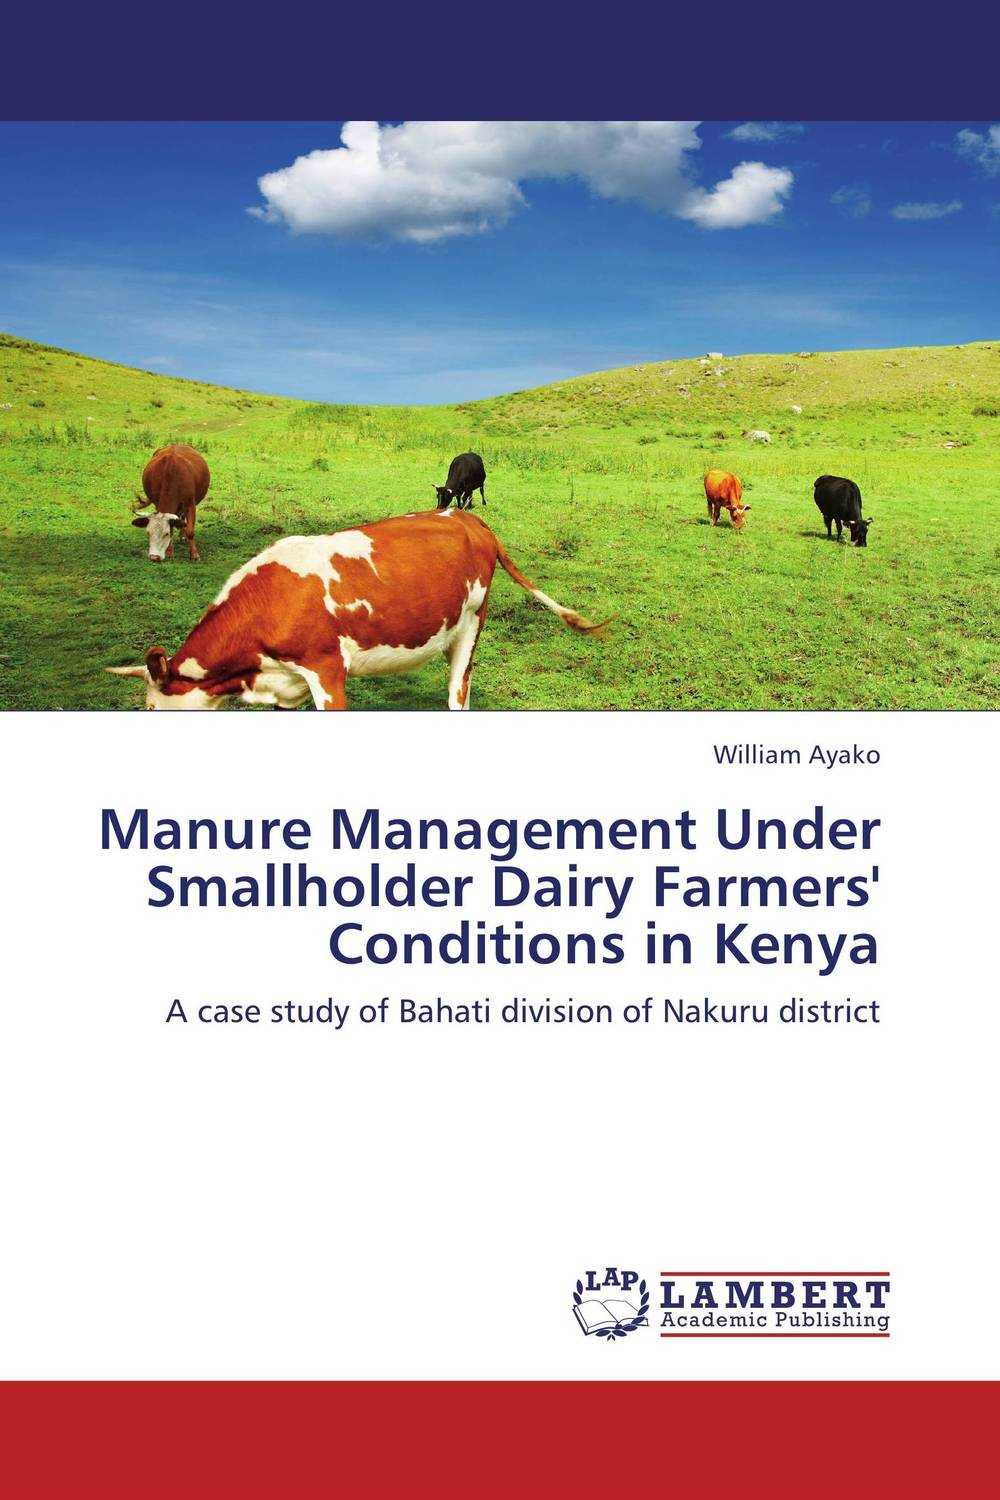 Manure Management Under Smallholder Dairy Farmers' Conditions in Kenya